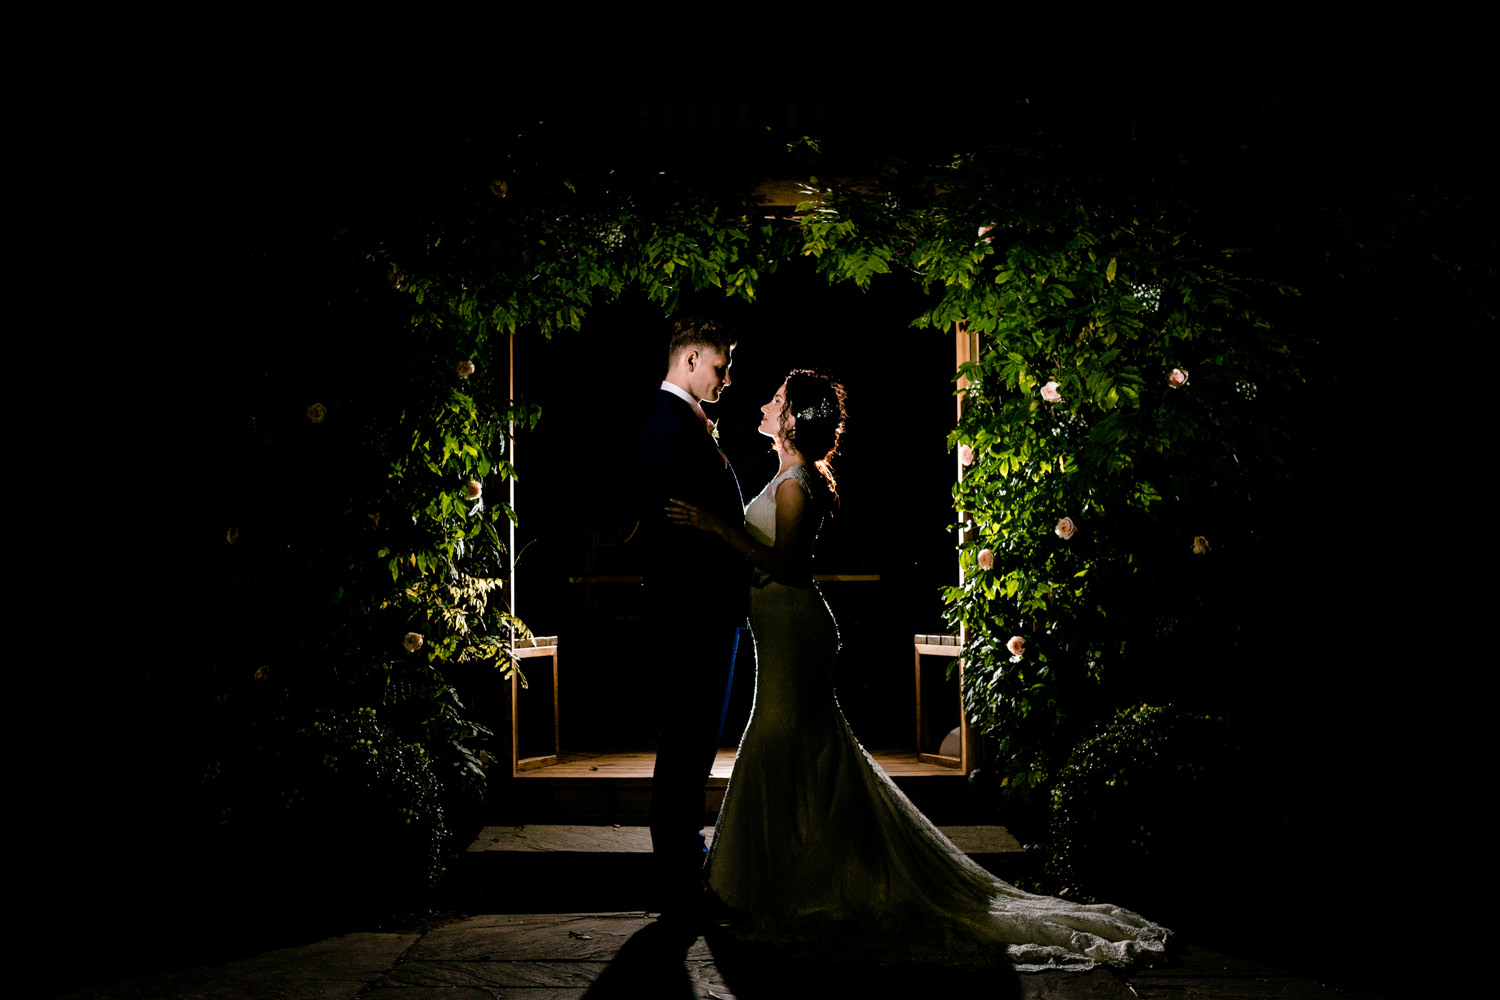 Pryors Hayes wedding venue in Cheshire, bridge and groom stood in front at the garden pagoda photographed at night.